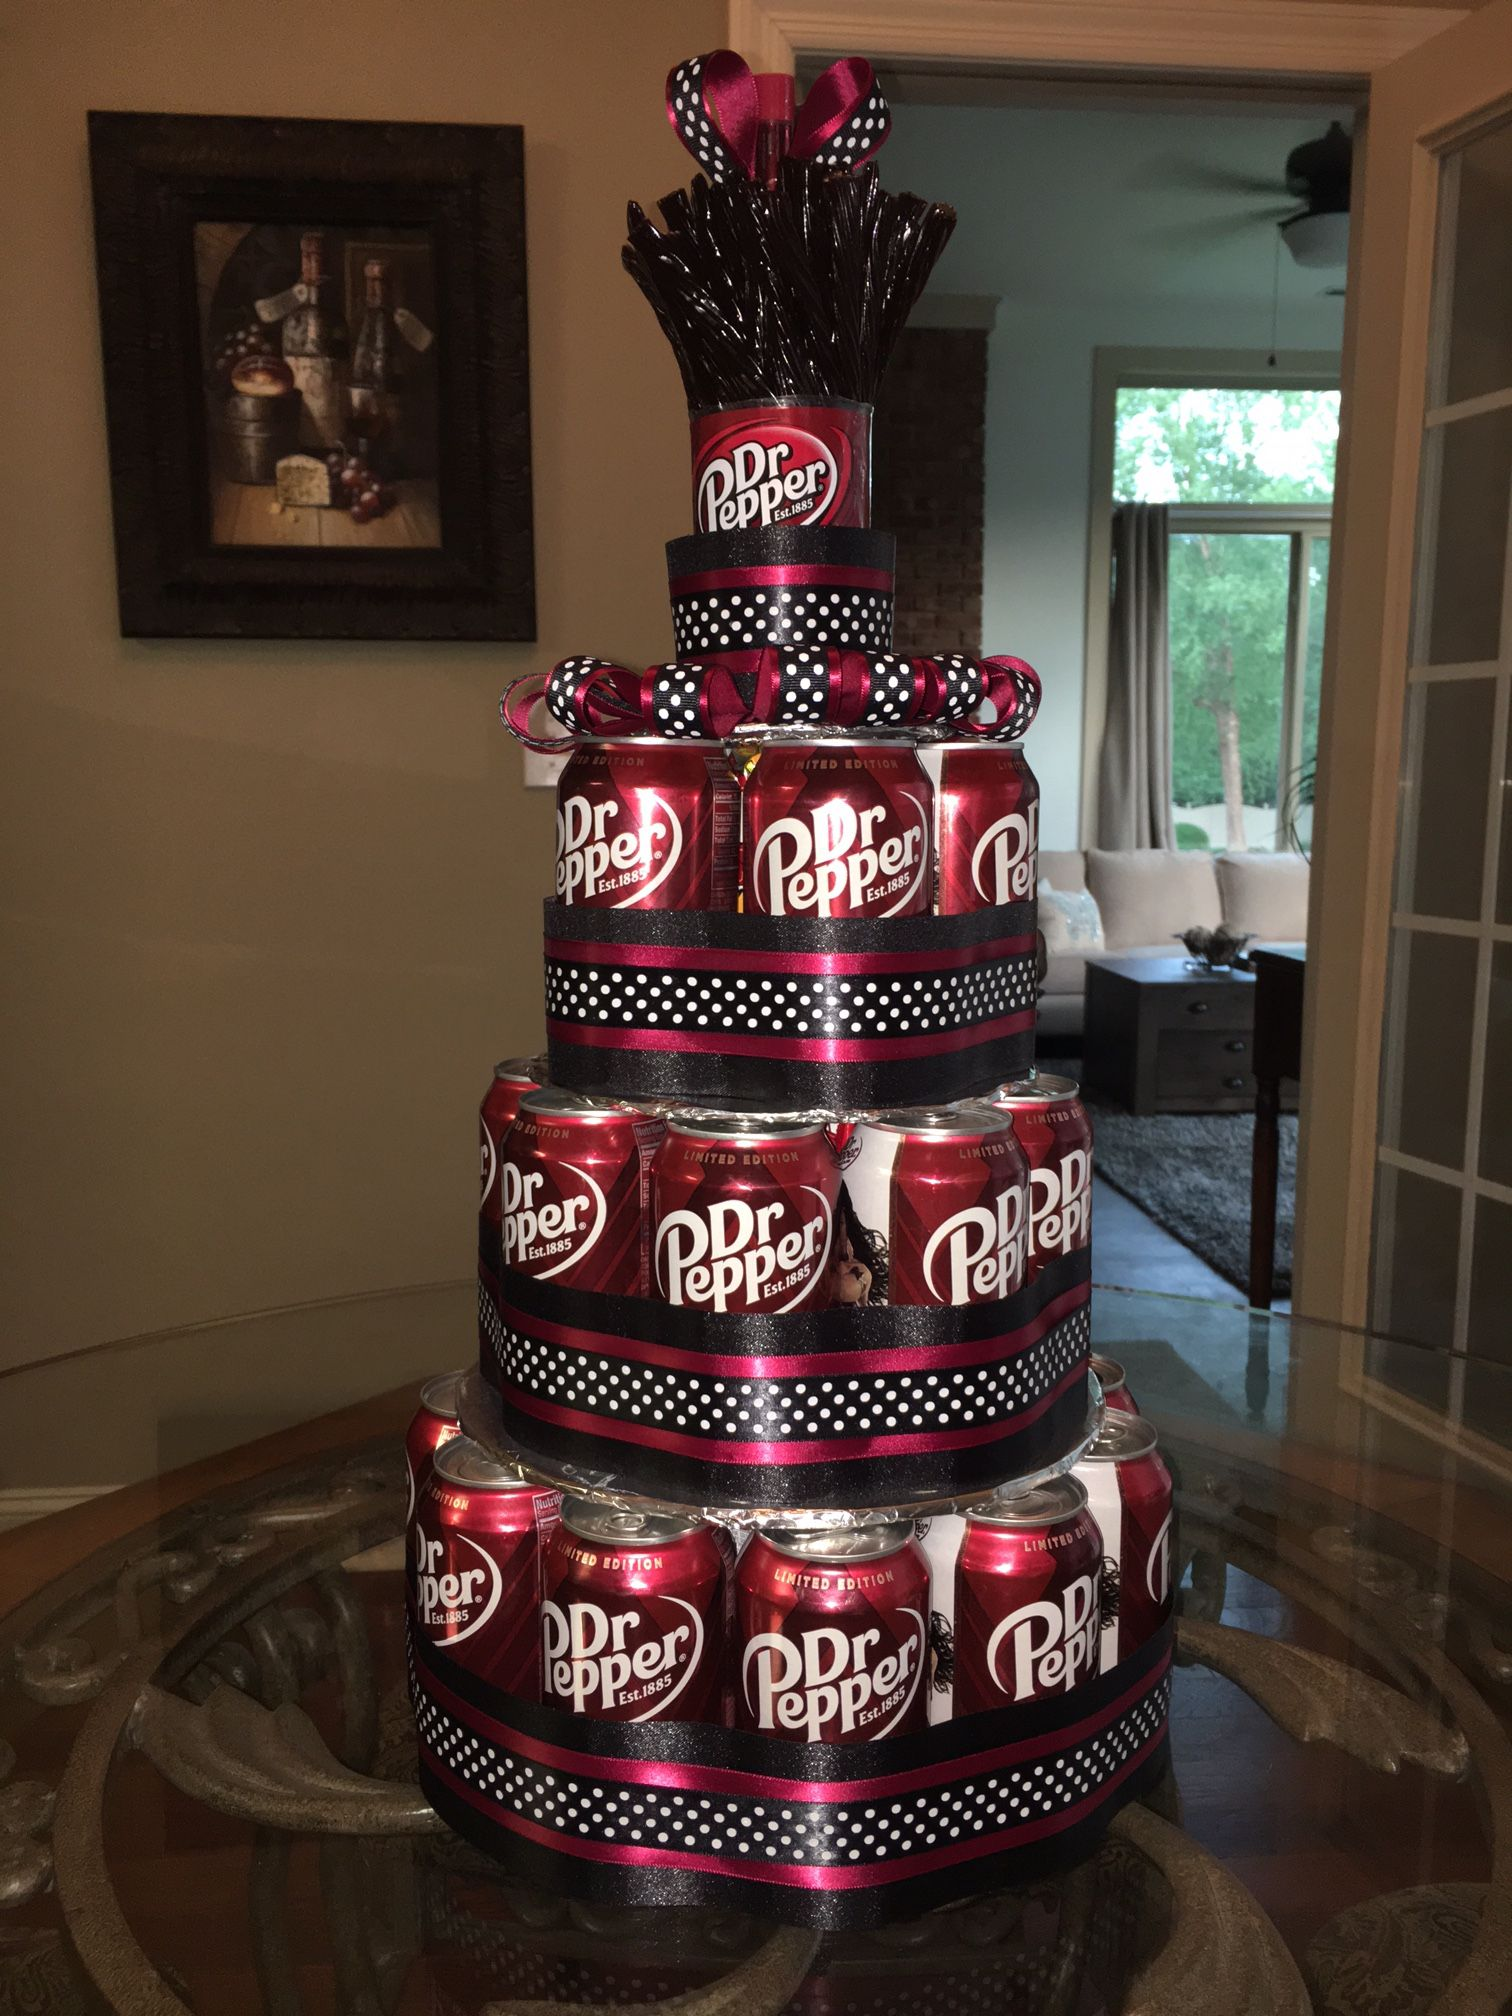 Astonishing Dr Pepper Can Cake With Dr Pepper Twizzlers On Top Cake Is Funny Birthday Cards Online Overcheapnameinfo